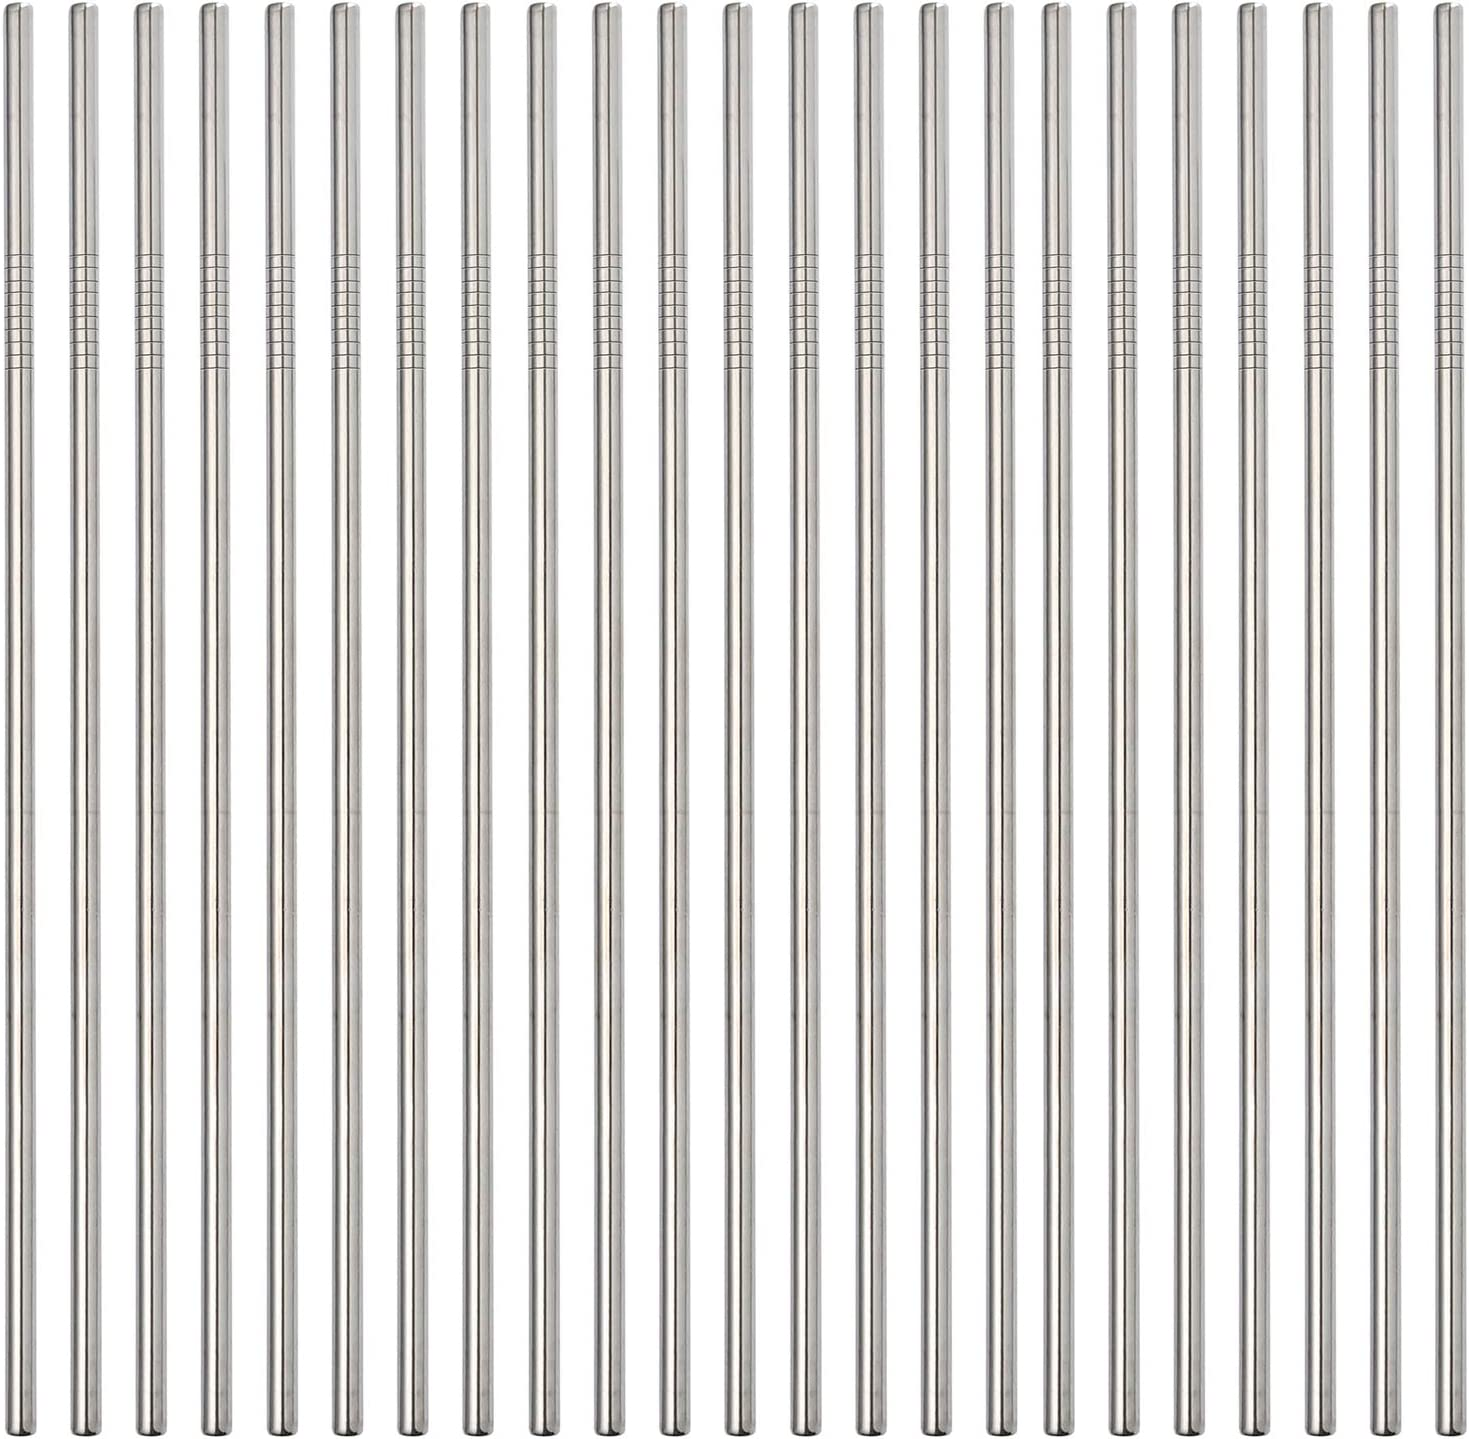 Reusable Metal Straws 24Pack 70% OFF Outlet Outlet ☆ Free Shipping Steel Bulk In 8.5